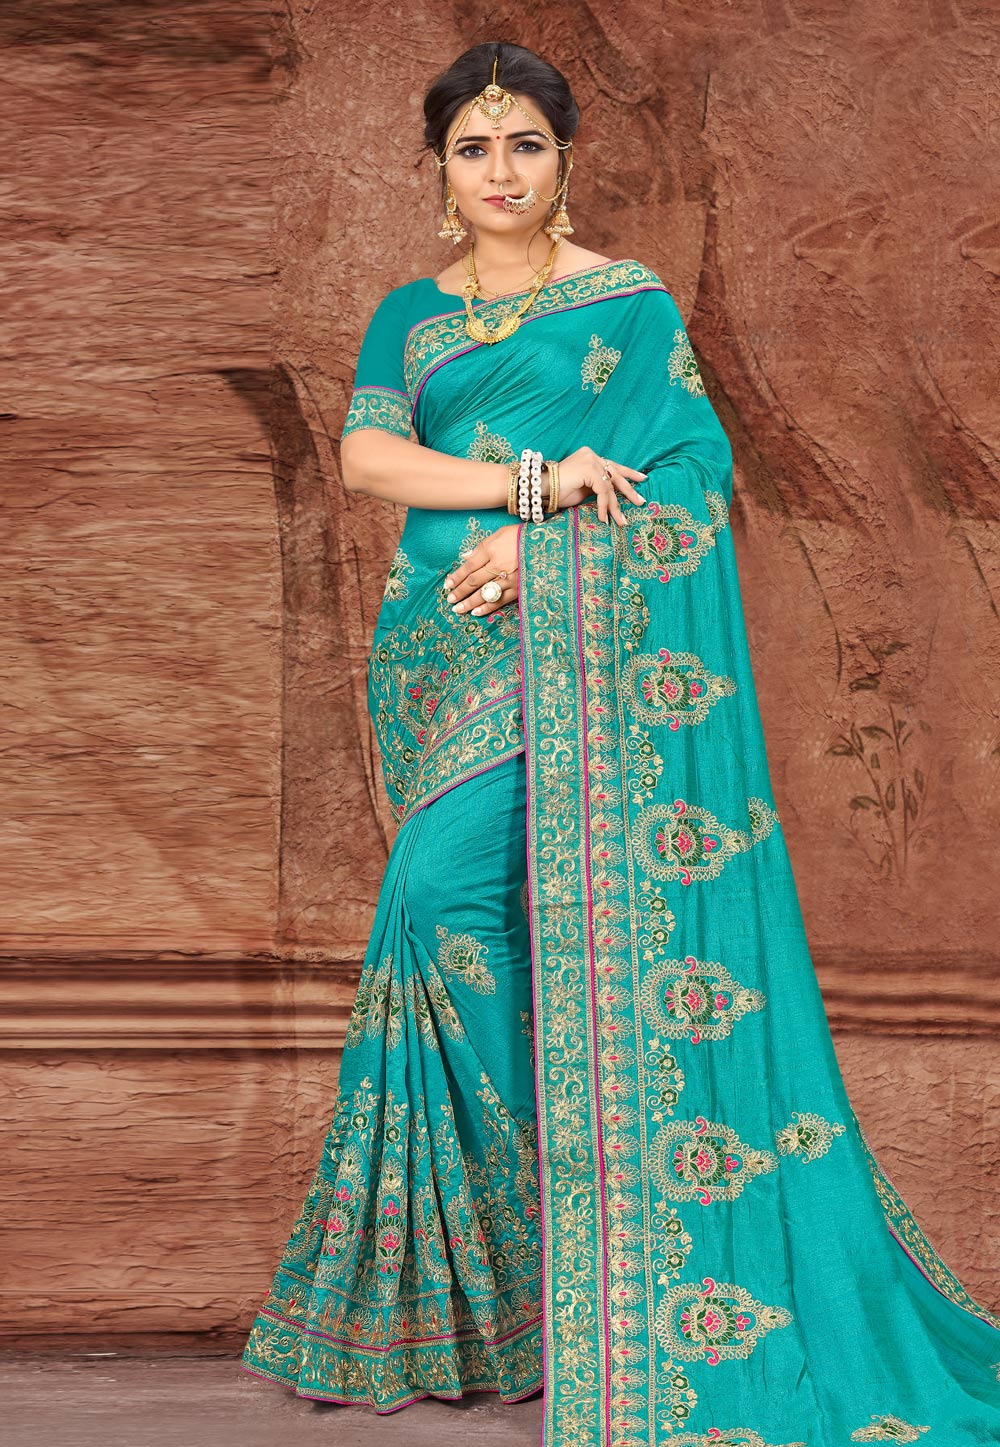 Turquoise Silk Saree With Blouse 203503